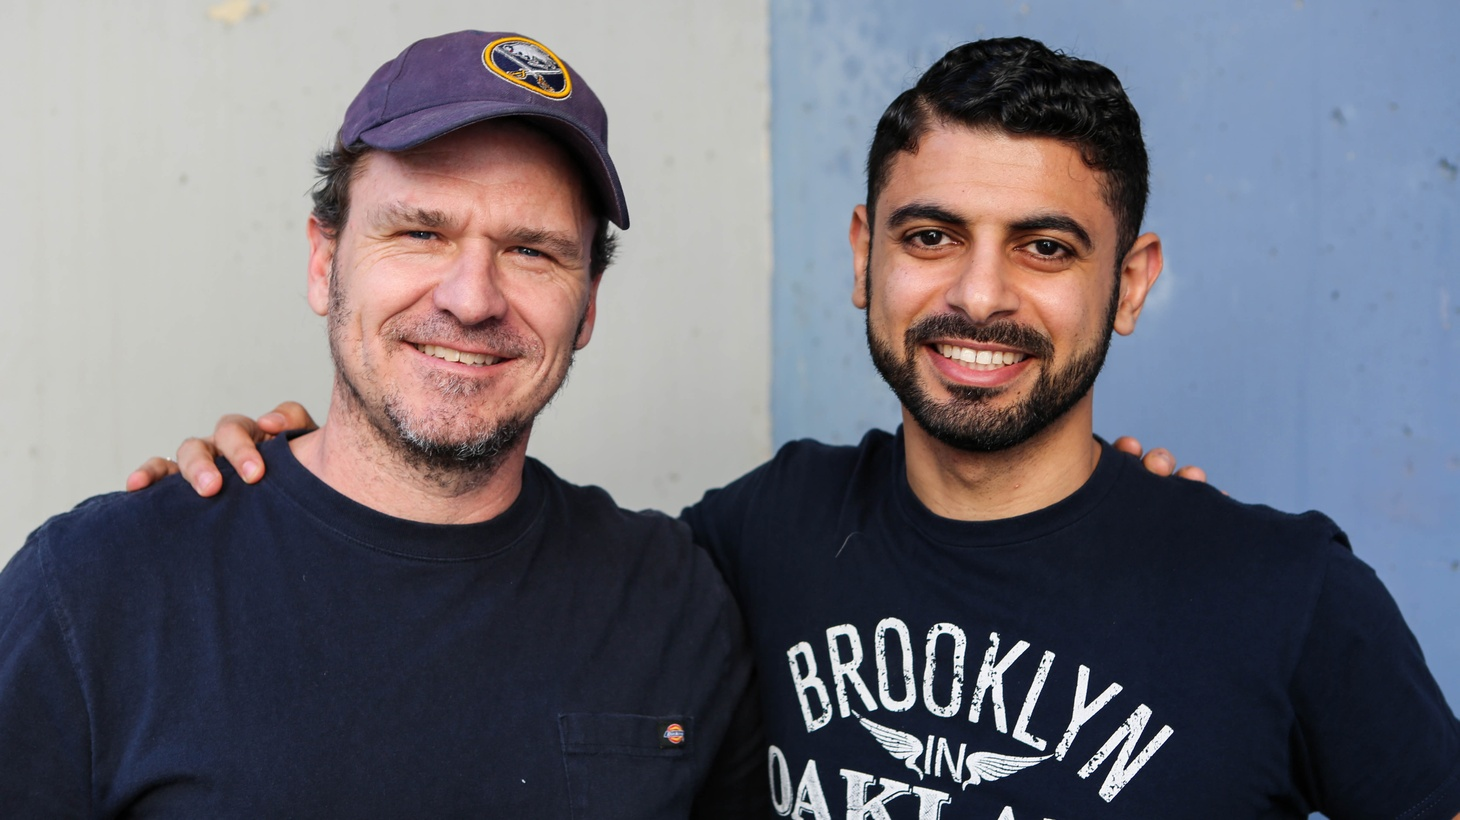 ForThe Monk of Mokha,Dave Eggers writes the story of Mokhtar Alkhanshali bridging the country of his ancestors with the country where he lives. This is a conversation about the fate of immigrant life in America.